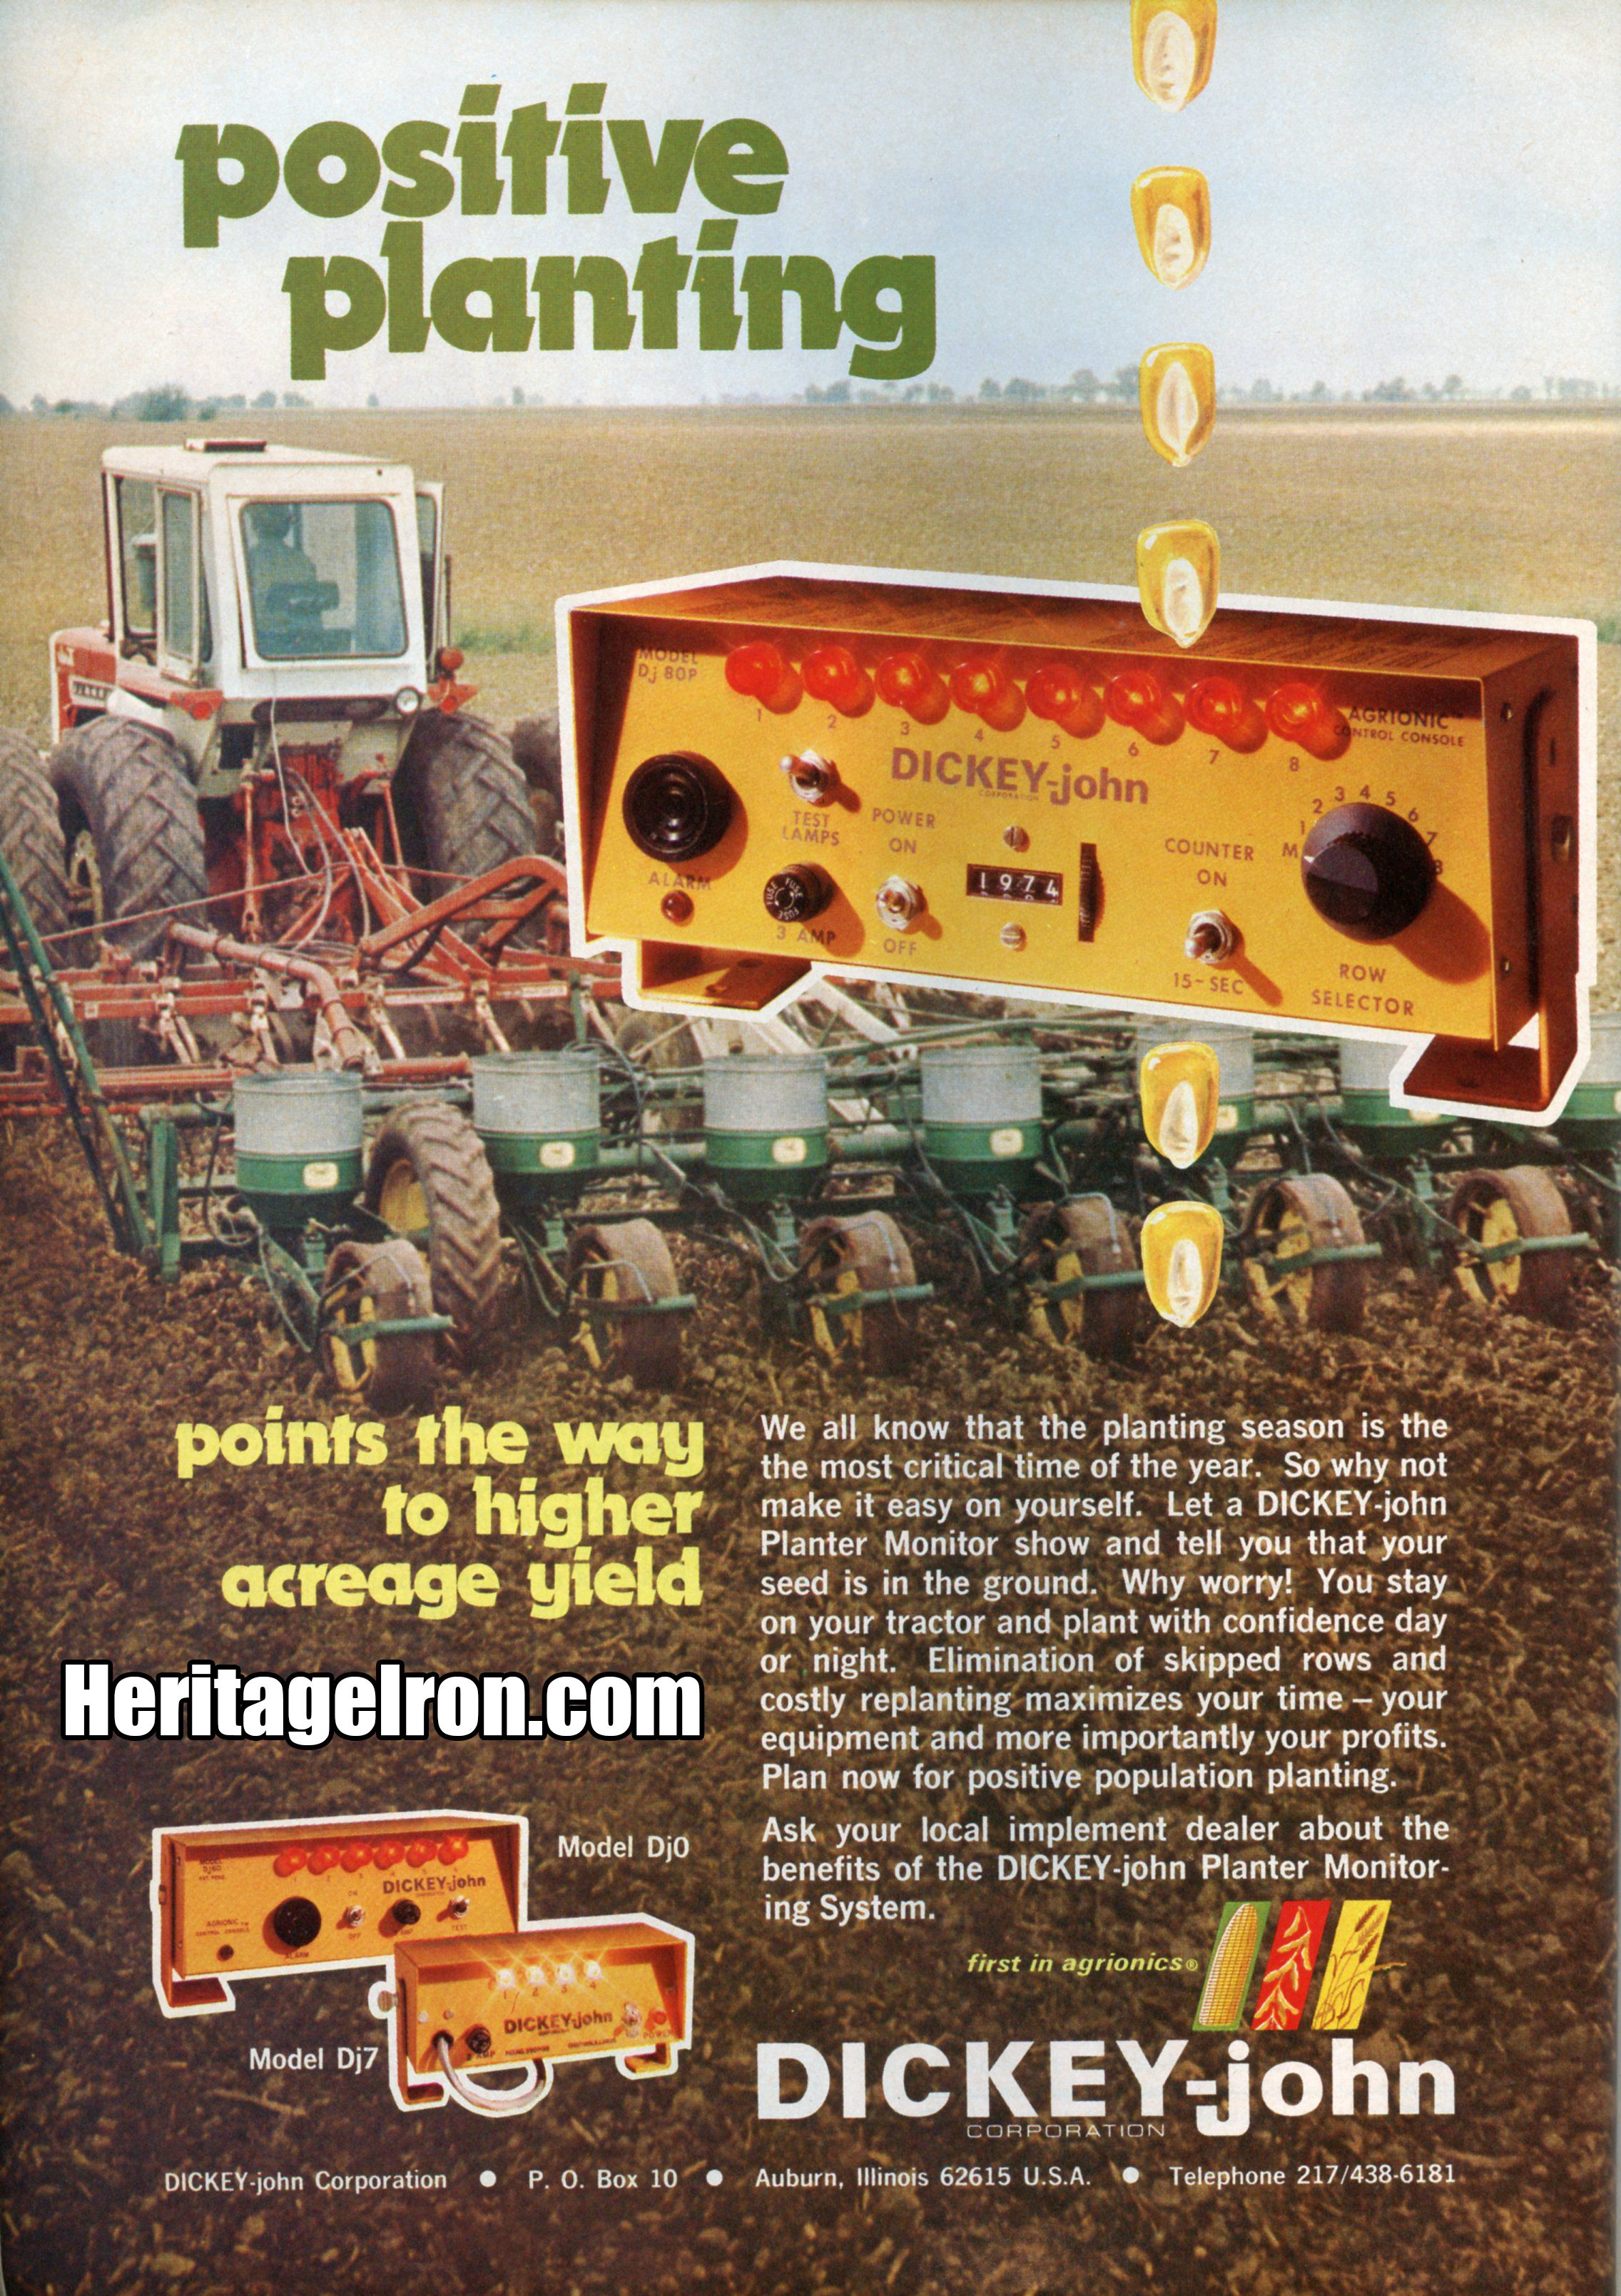 This week's Vintage Ad is brought to you by Successful Farming magazine from the March 1975 Planting Issue. #HeritageIron #MuscleTractor